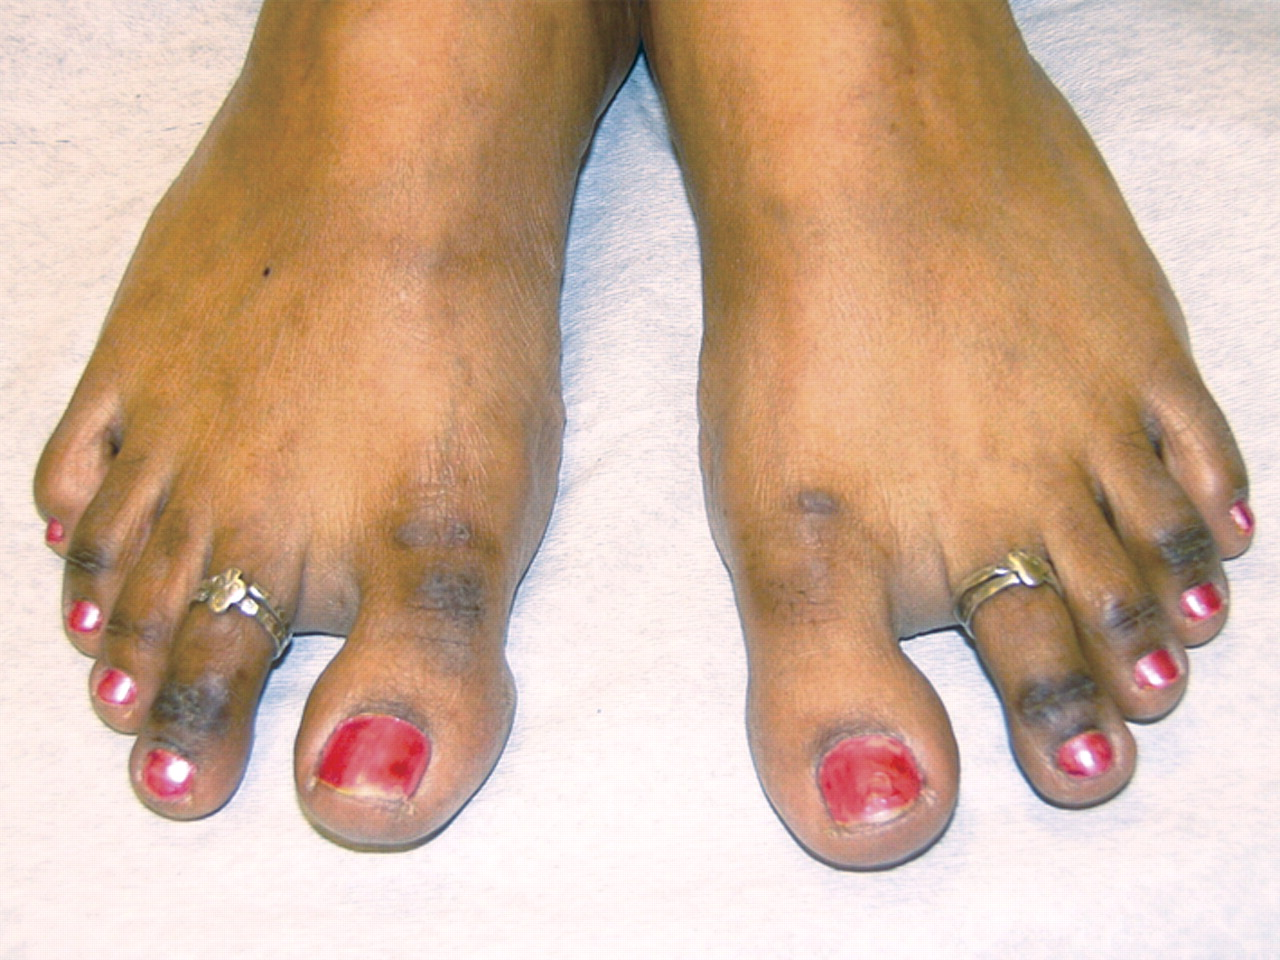 Cutaneous lesions and vitamin B12 deficiency | The College ... B12 Deficiency Skin